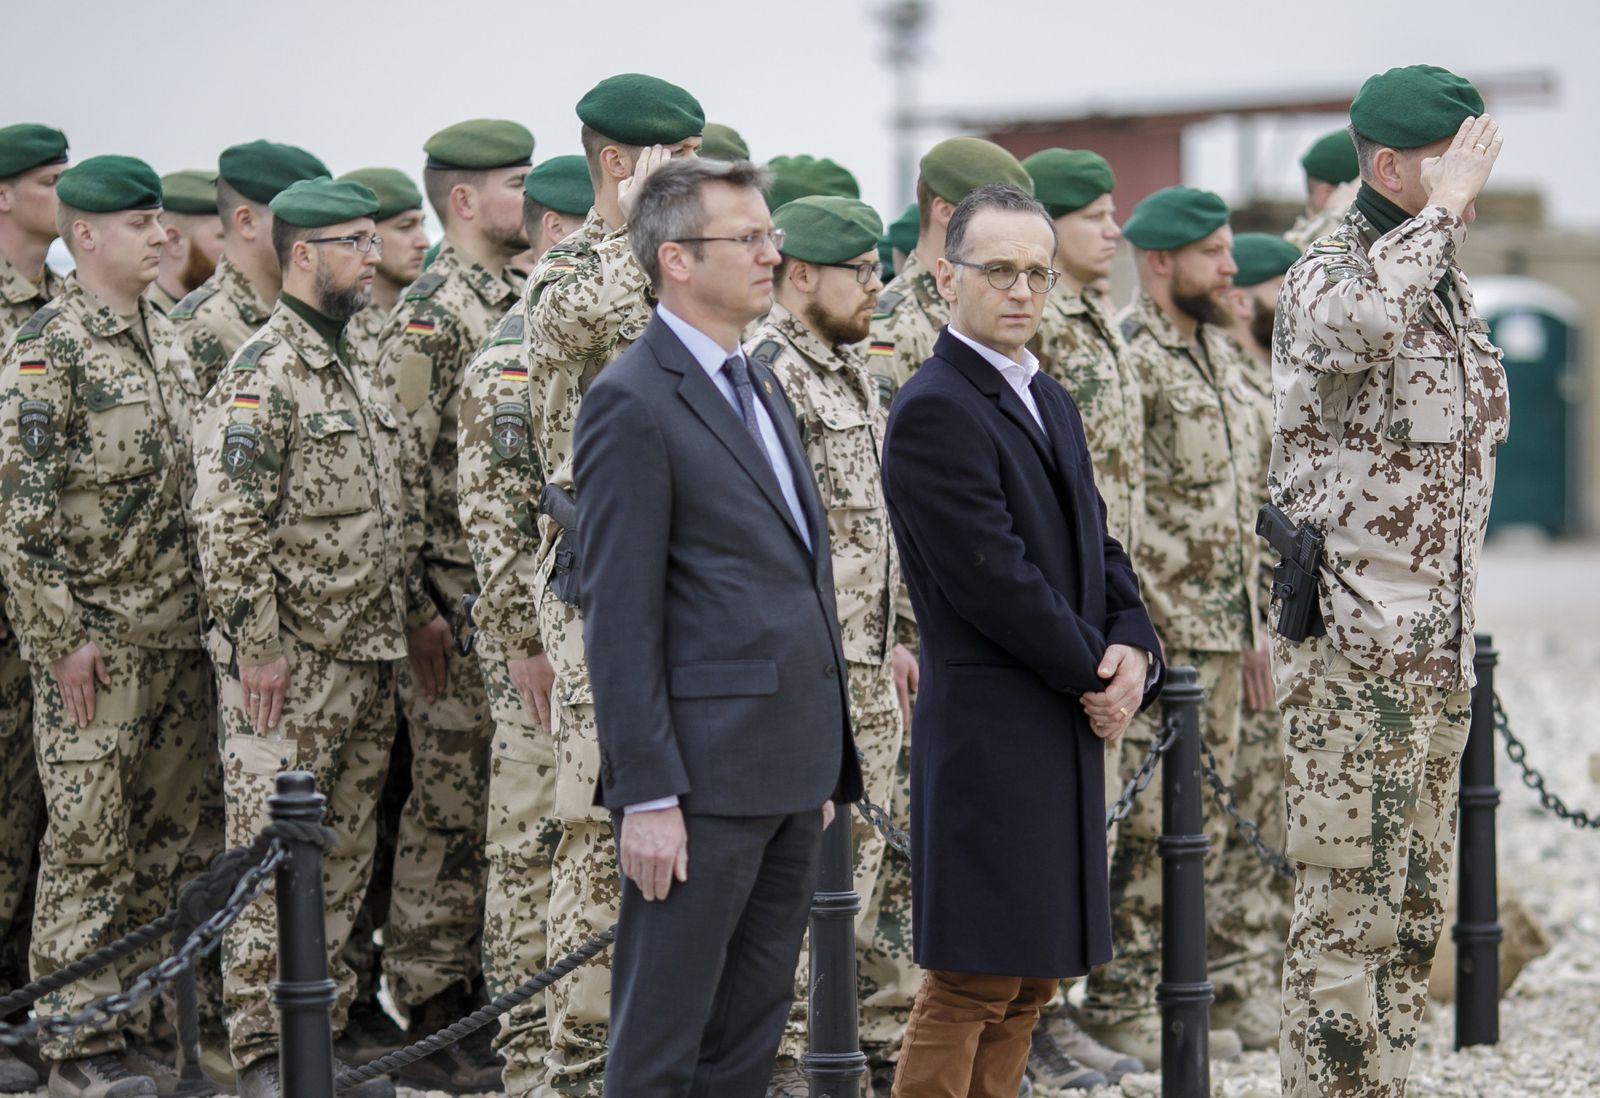 Außenminister Maas in Afghanistan